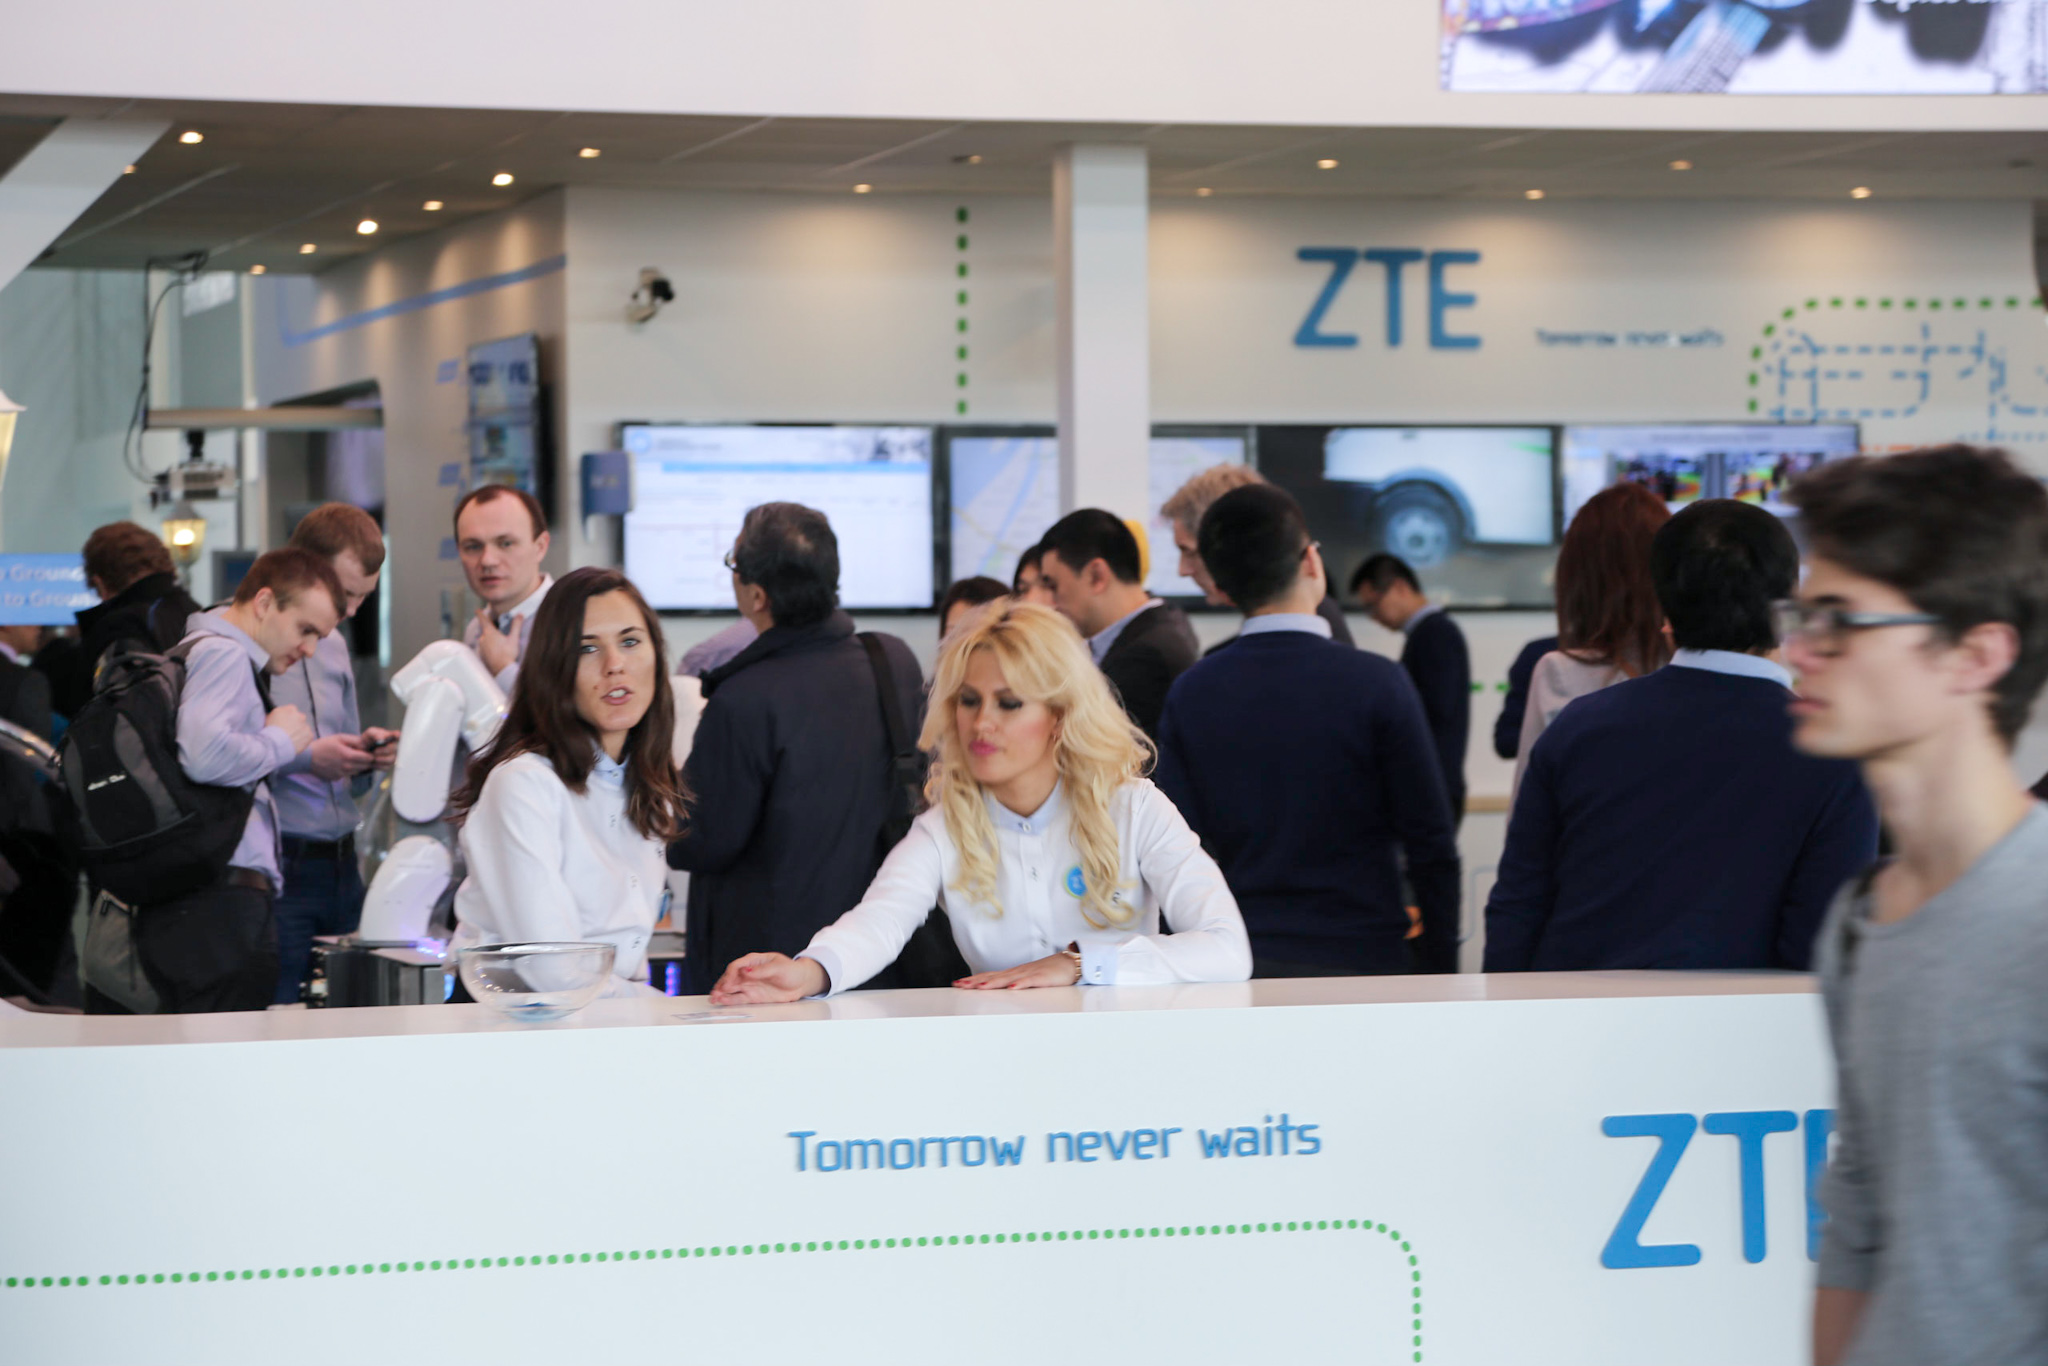 ZTE's slogan: Tomorrow never waits. Probably tomorrow will not come for ZTE